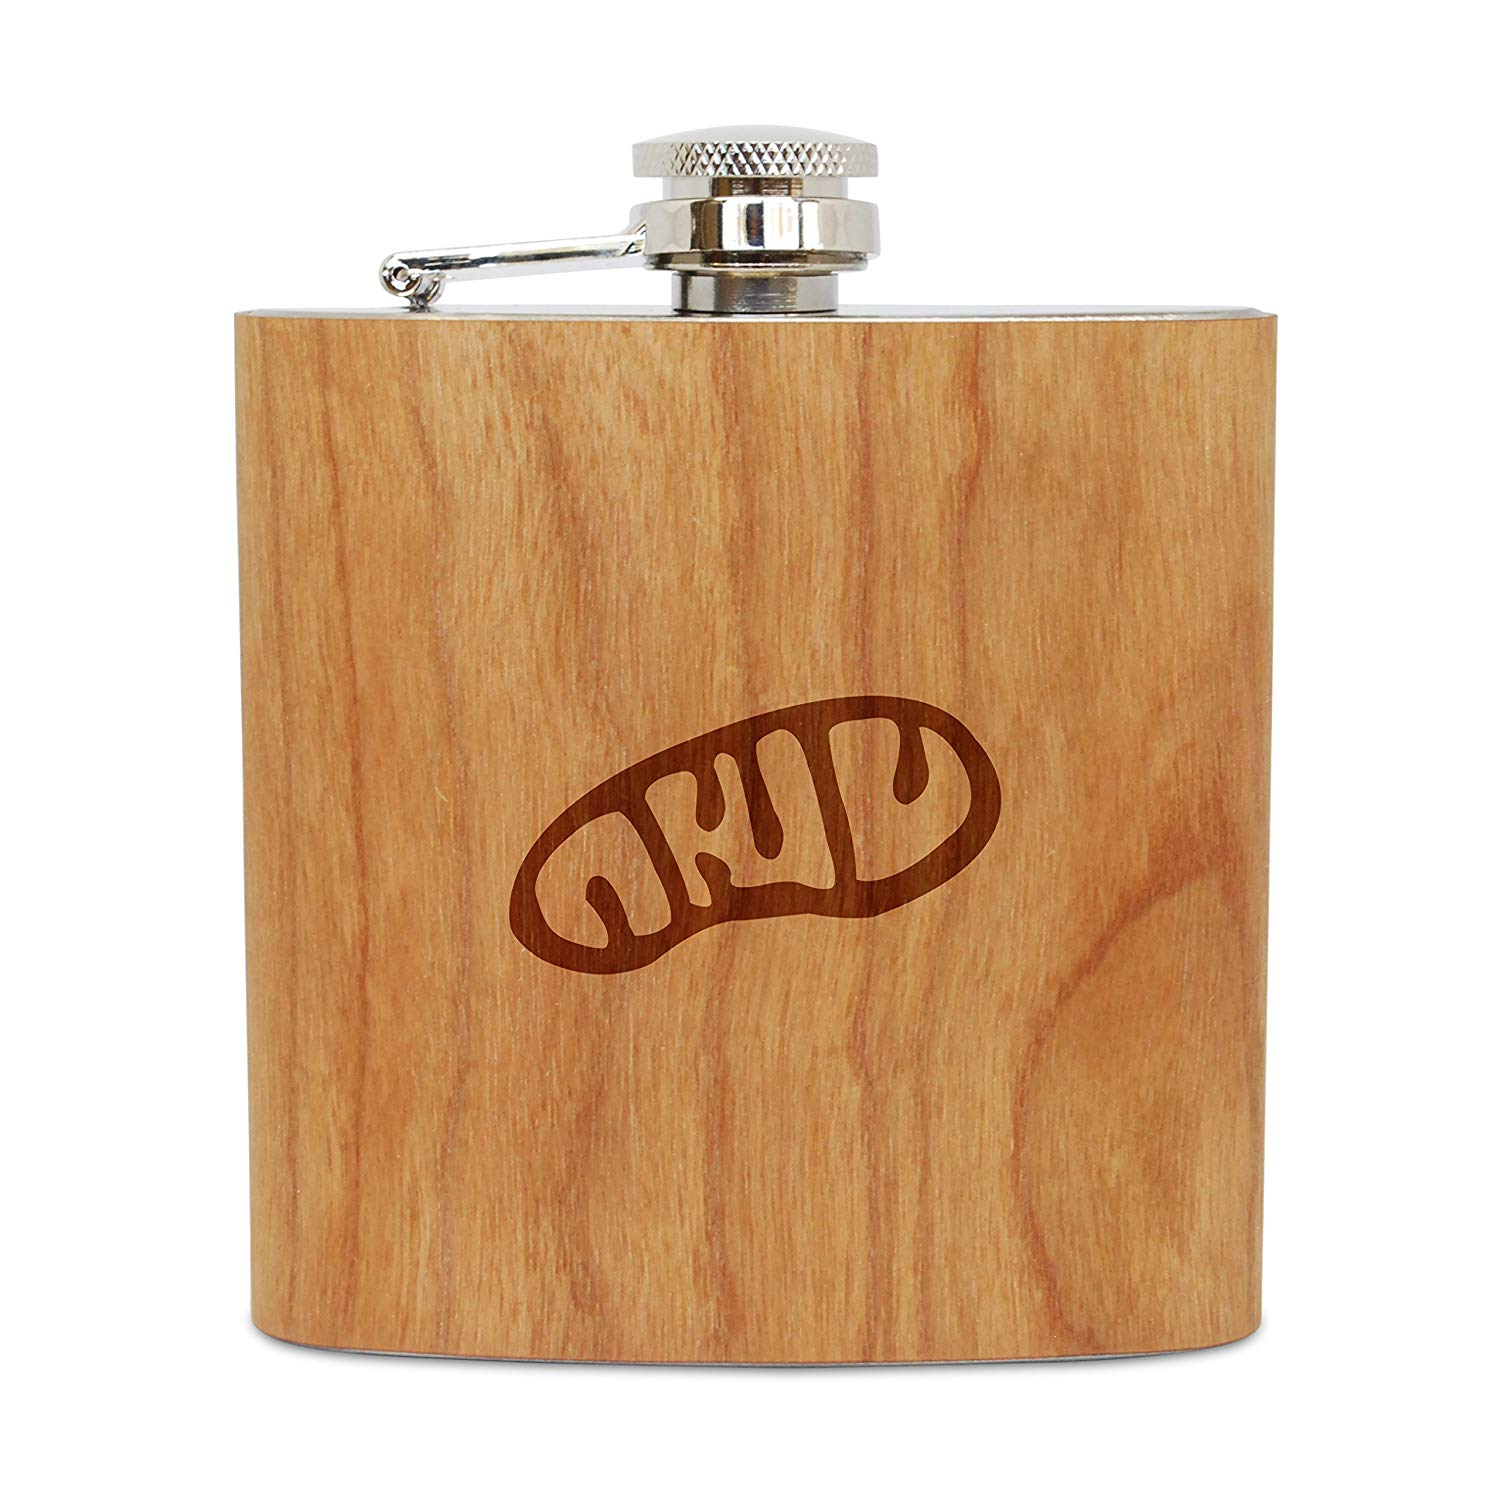 WOODEN ACCESSORIES COMPANY Cherry Wood Flask With Stainless Steel Body - Laser Engraved Flask With Mitochondria Design - 6 Oz Wood Hip Flask Handmade In USA